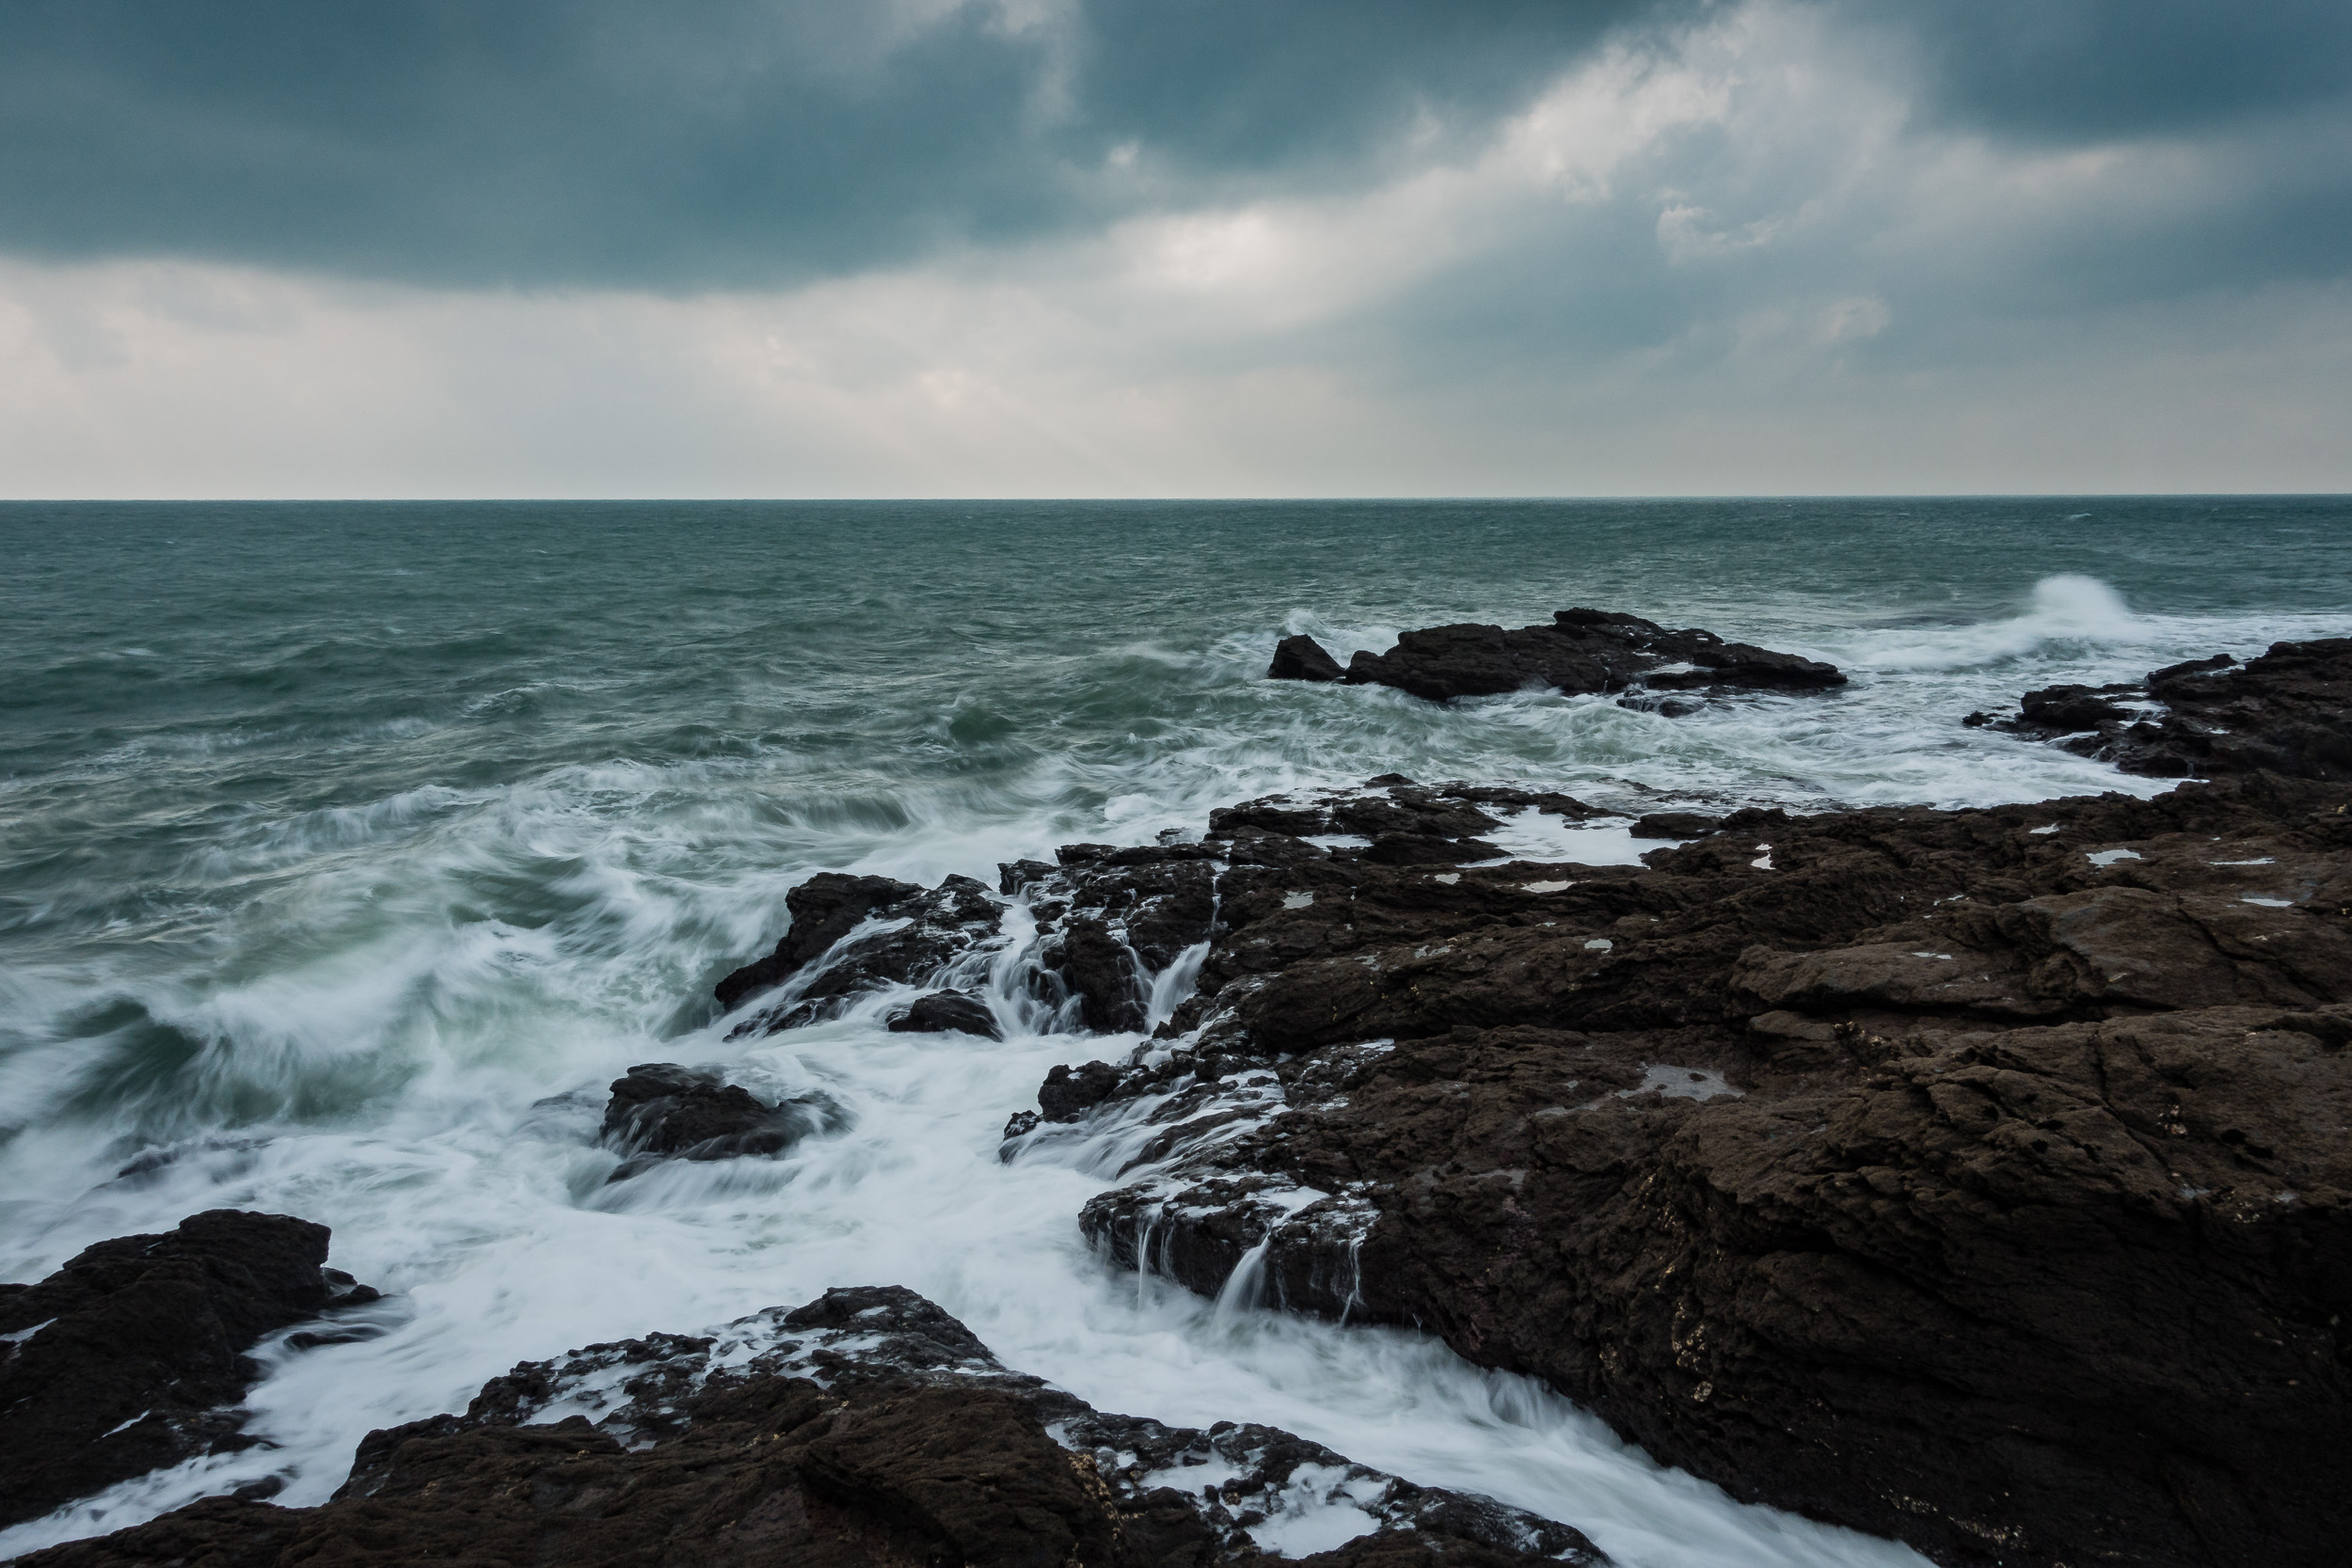 Sony RX100 M4, 8.8mm (24mm @ 35mm equiv), 1/4 sec @ f/11, ISO 80, in-camera ND filter on. Processed in Lightroom CC.